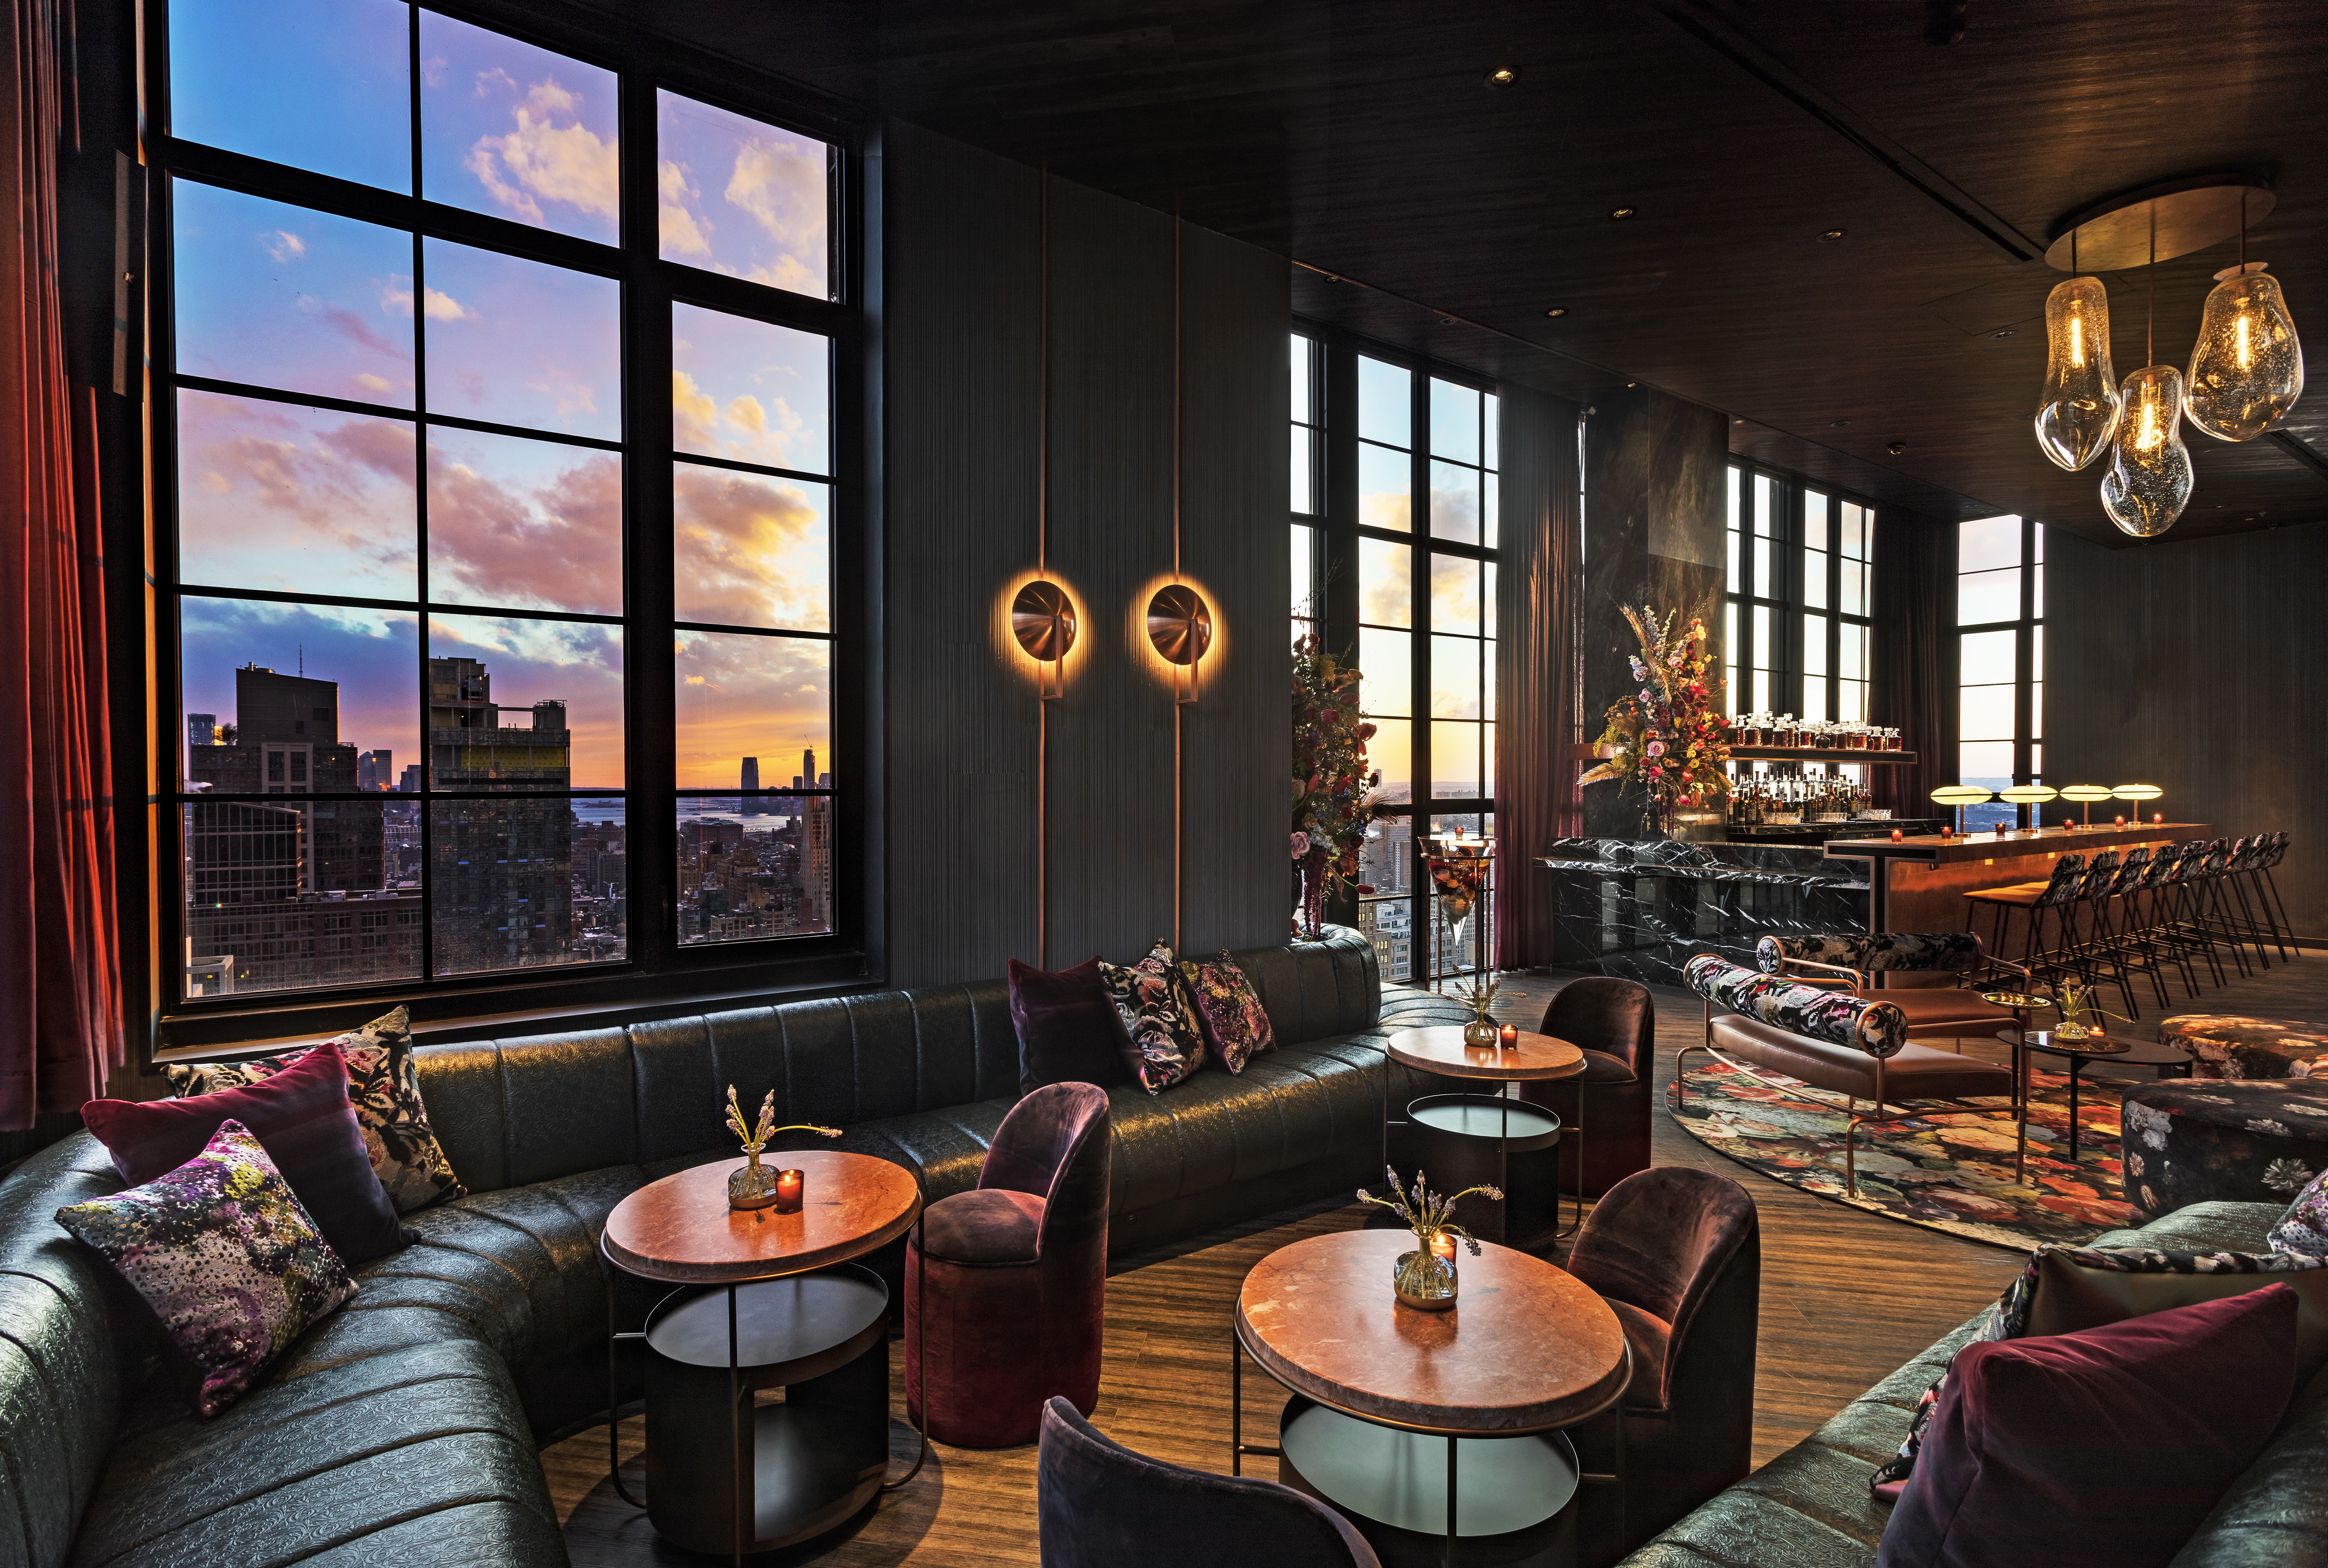 The interior of a hotel restaurant. There are tables and seating. Large windows overlook city buildings and a colorful sunset.